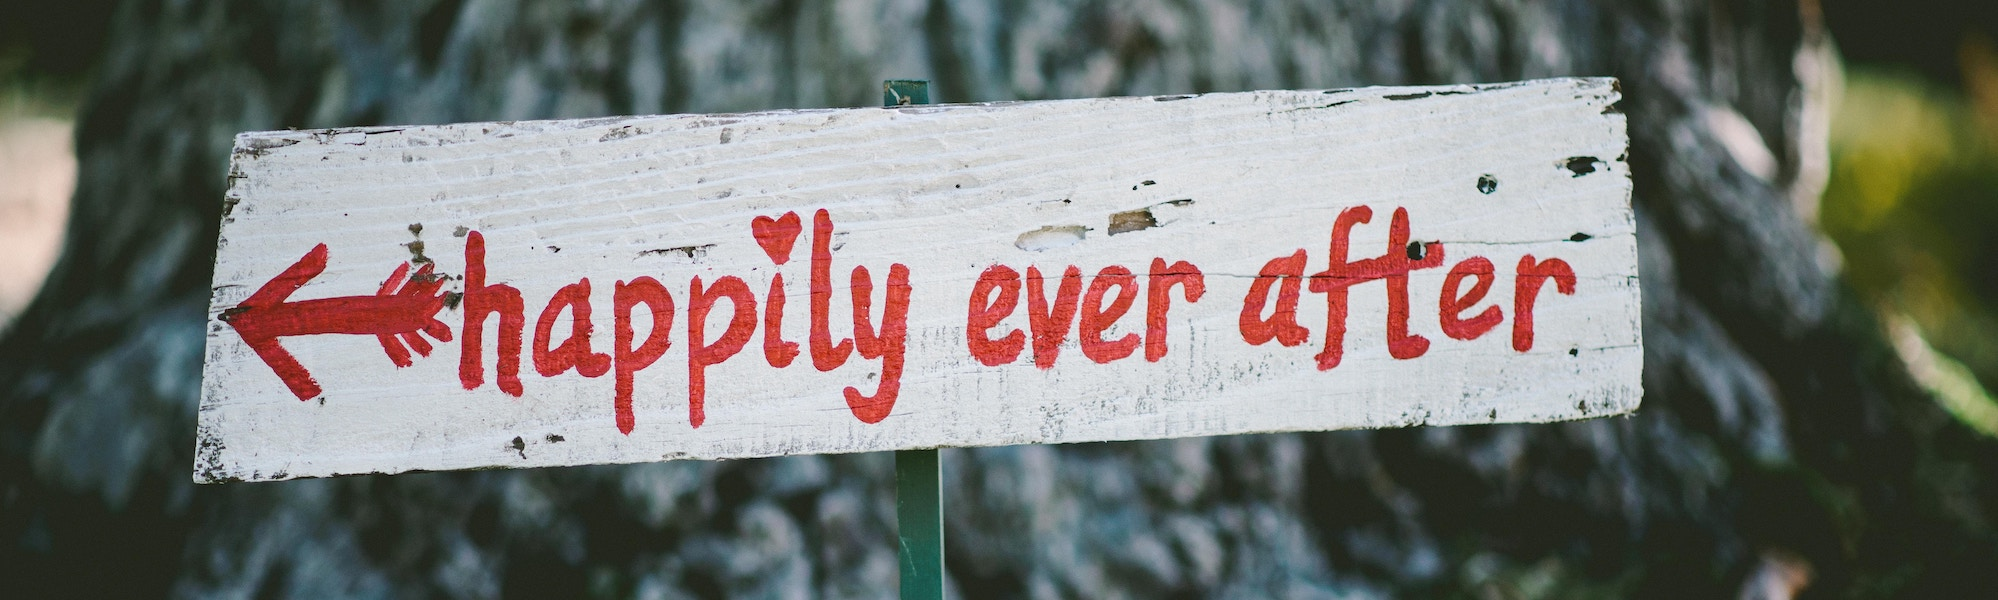 Happily Ever After sign illustrating God's dream for your marriage